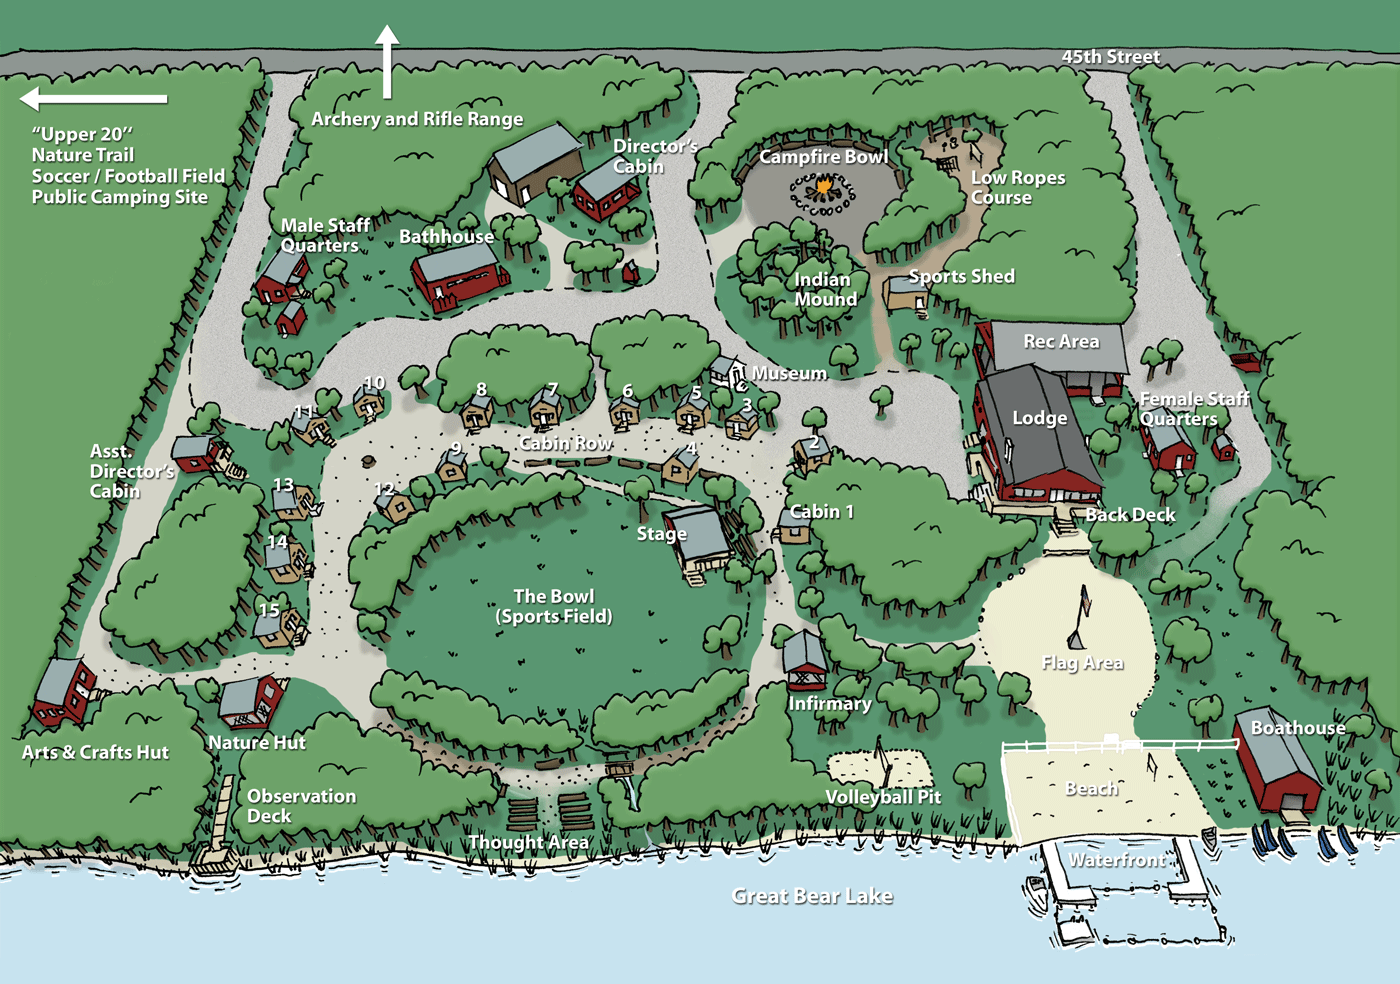 Explore this illustrated map of camp